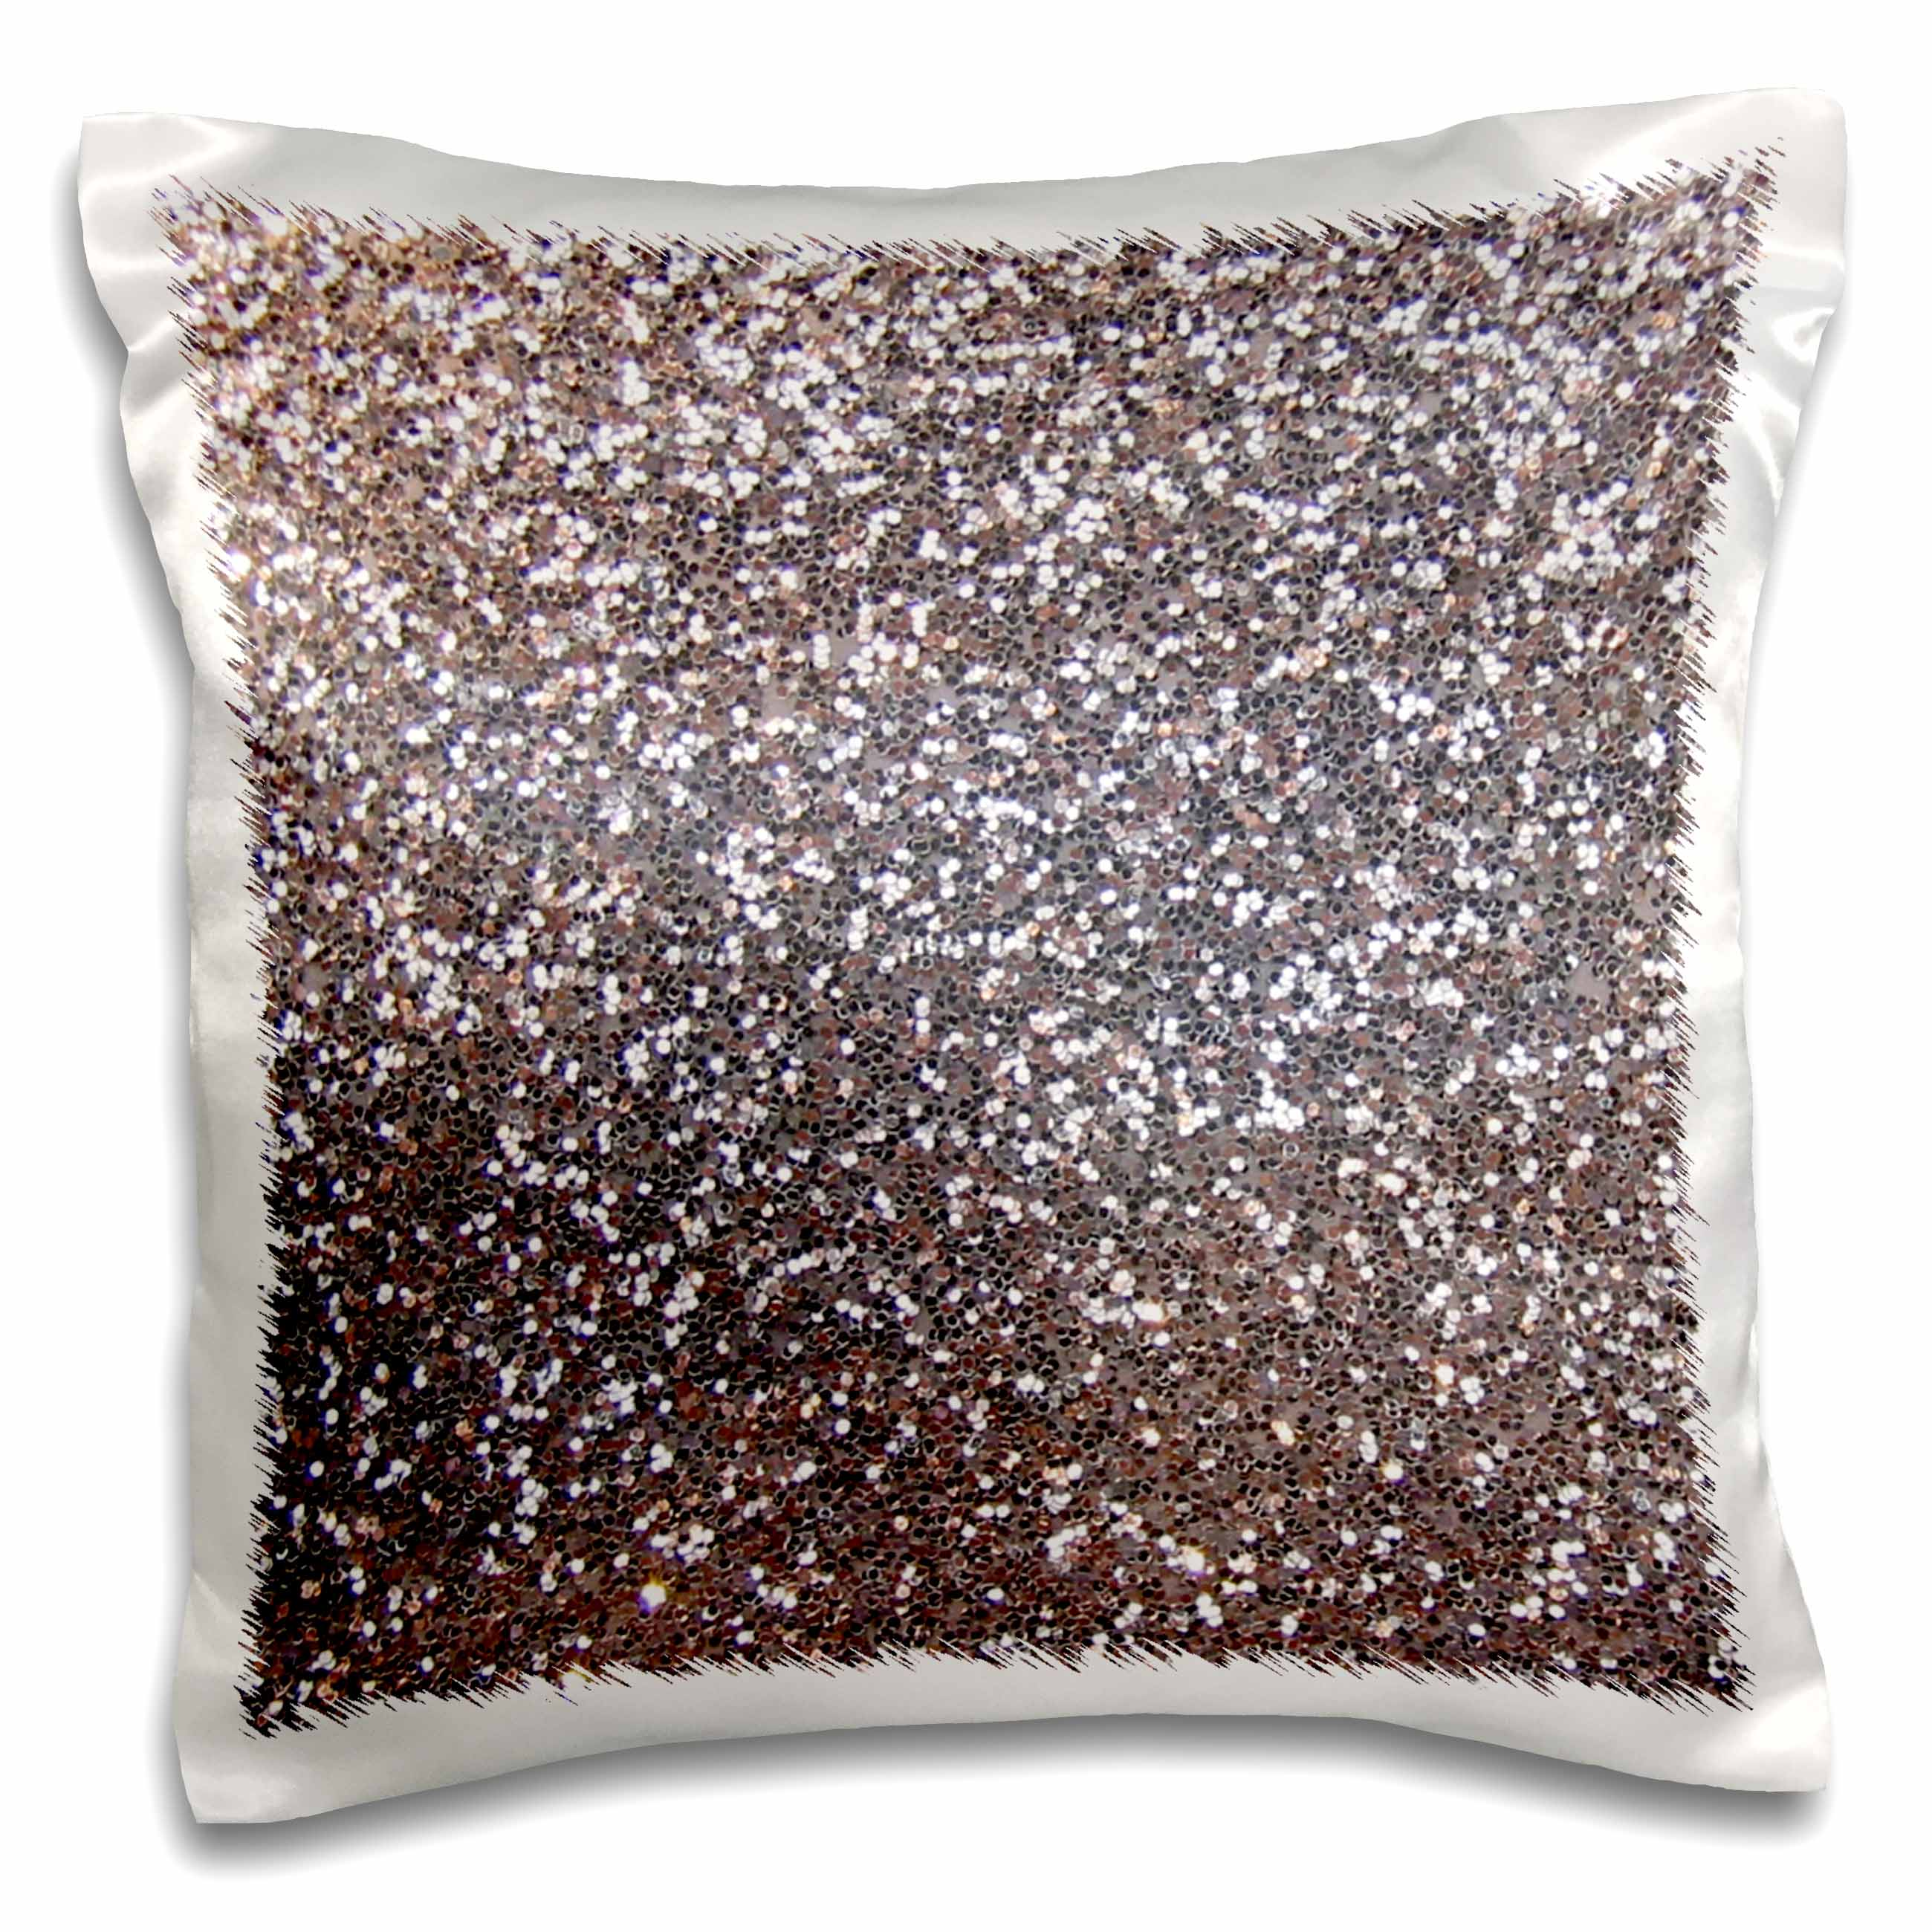 3dRose Silver Faux Glitter - photo of glittery texture - metallic sparkly bling - diva glam sequins glamor, Pillow Case, 16 by 16-inch